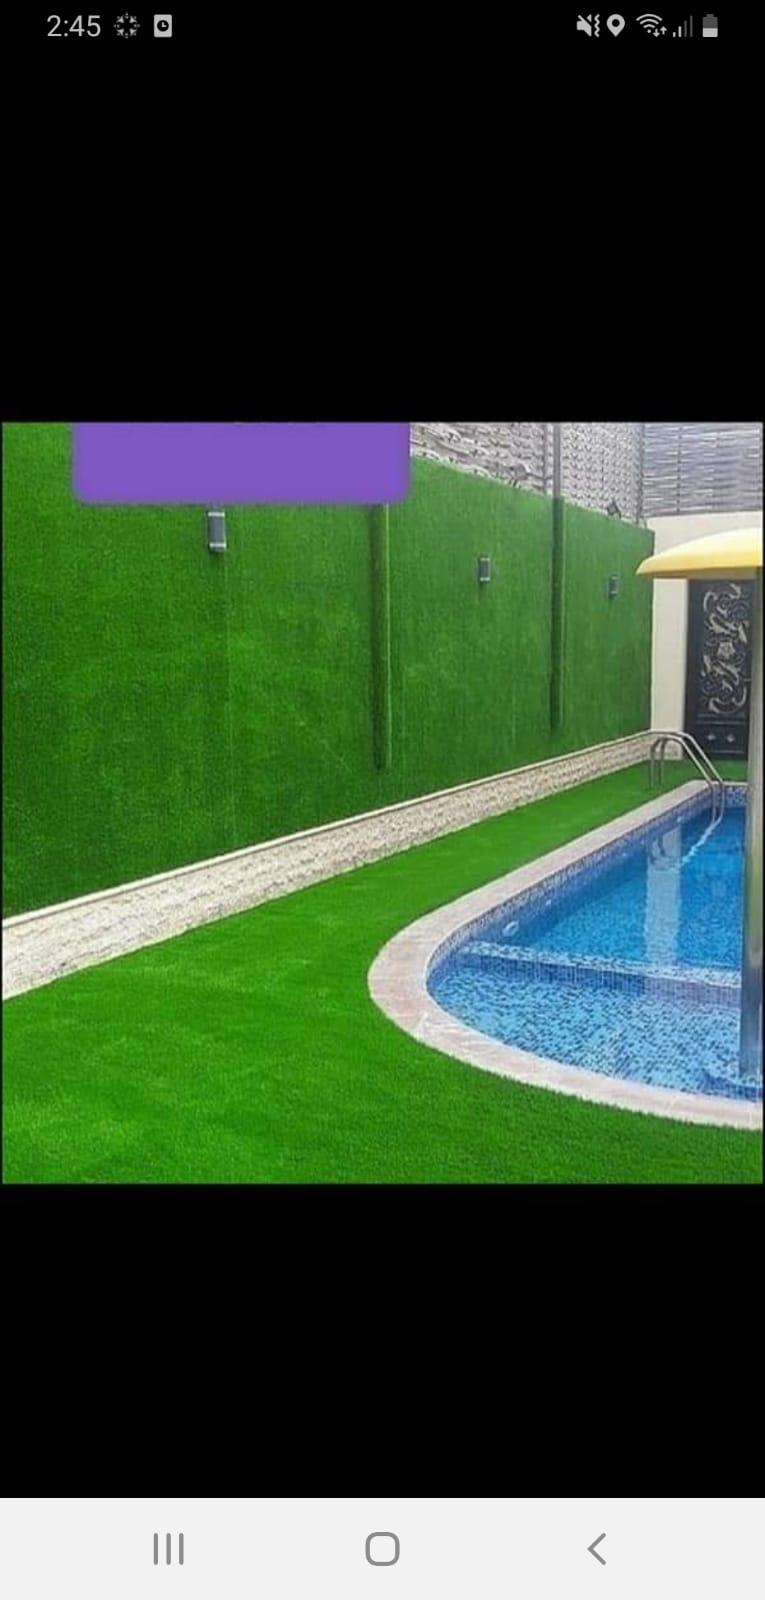 We fix and also provide Carpets & Grass carpets. W